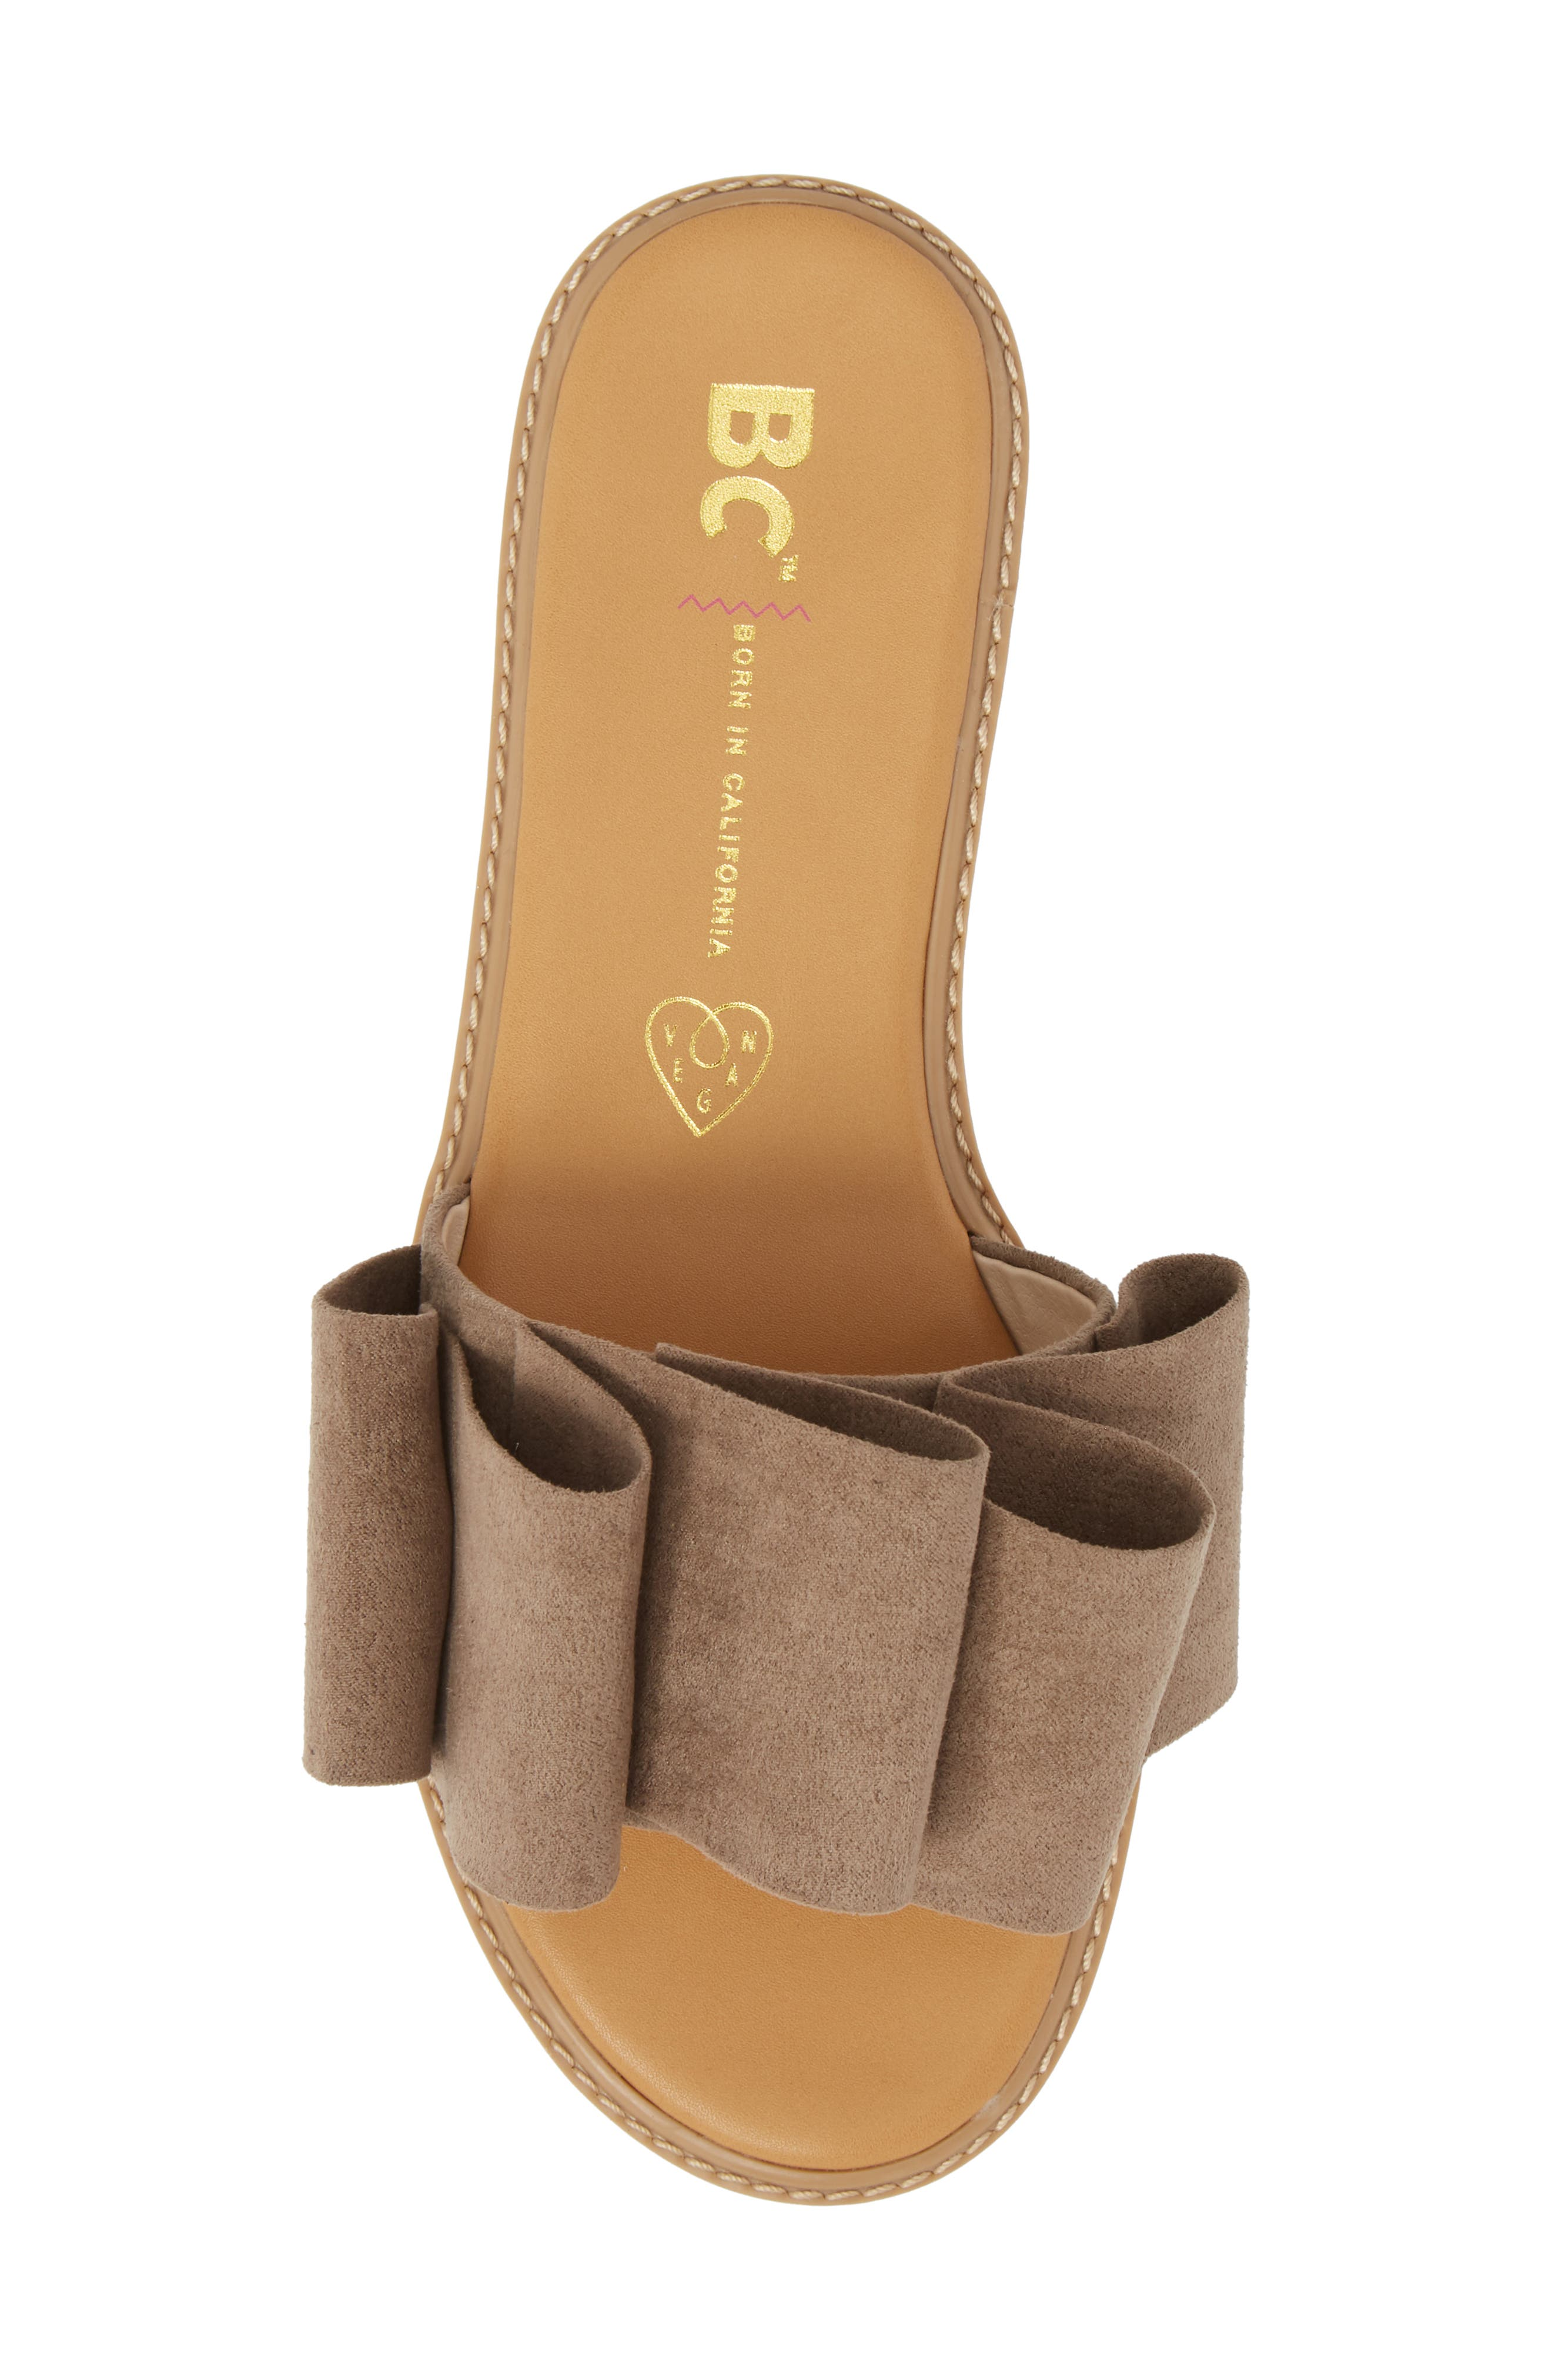 Fun for All Ages Pleated Sandal,                             Alternate thumbnail 5, color,                             TAUPE SUEDE